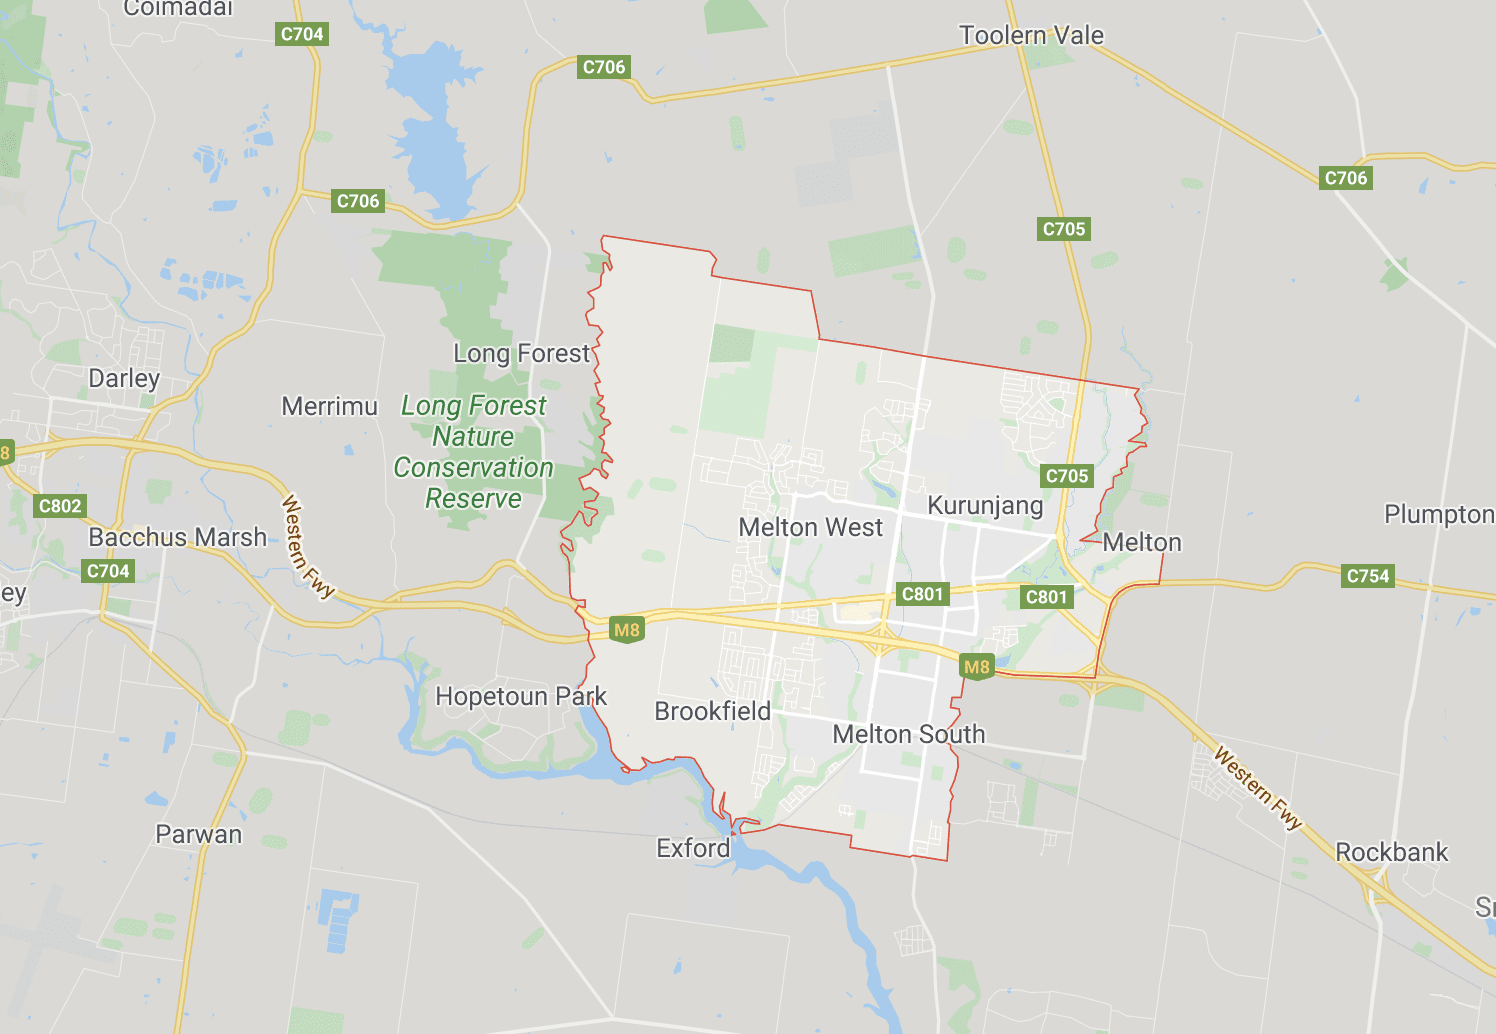 Map of Melton Victoria